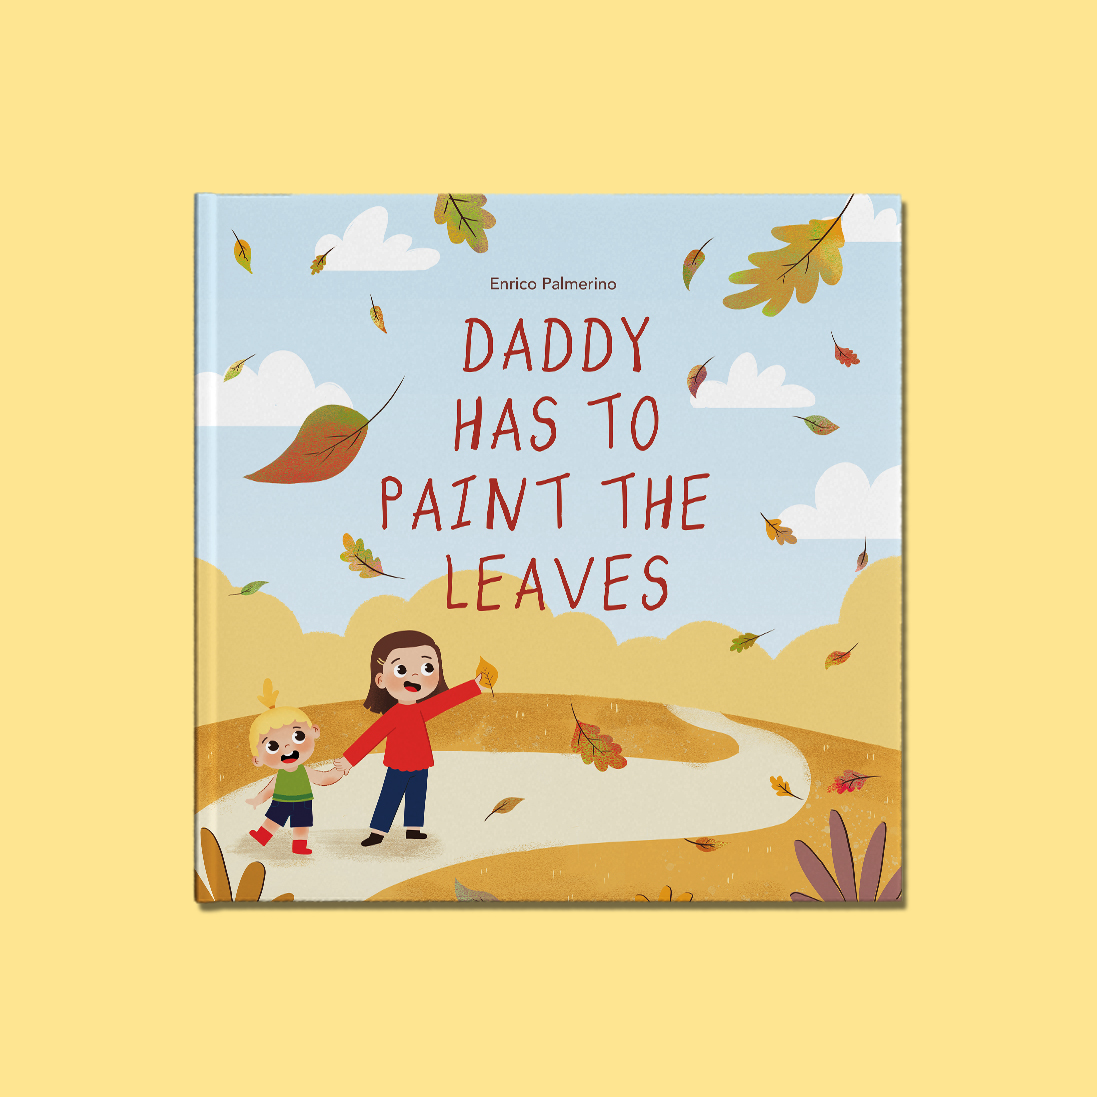 Cover Mockup of Daddy Has to Paint the Leaves by Enrico Palmerino